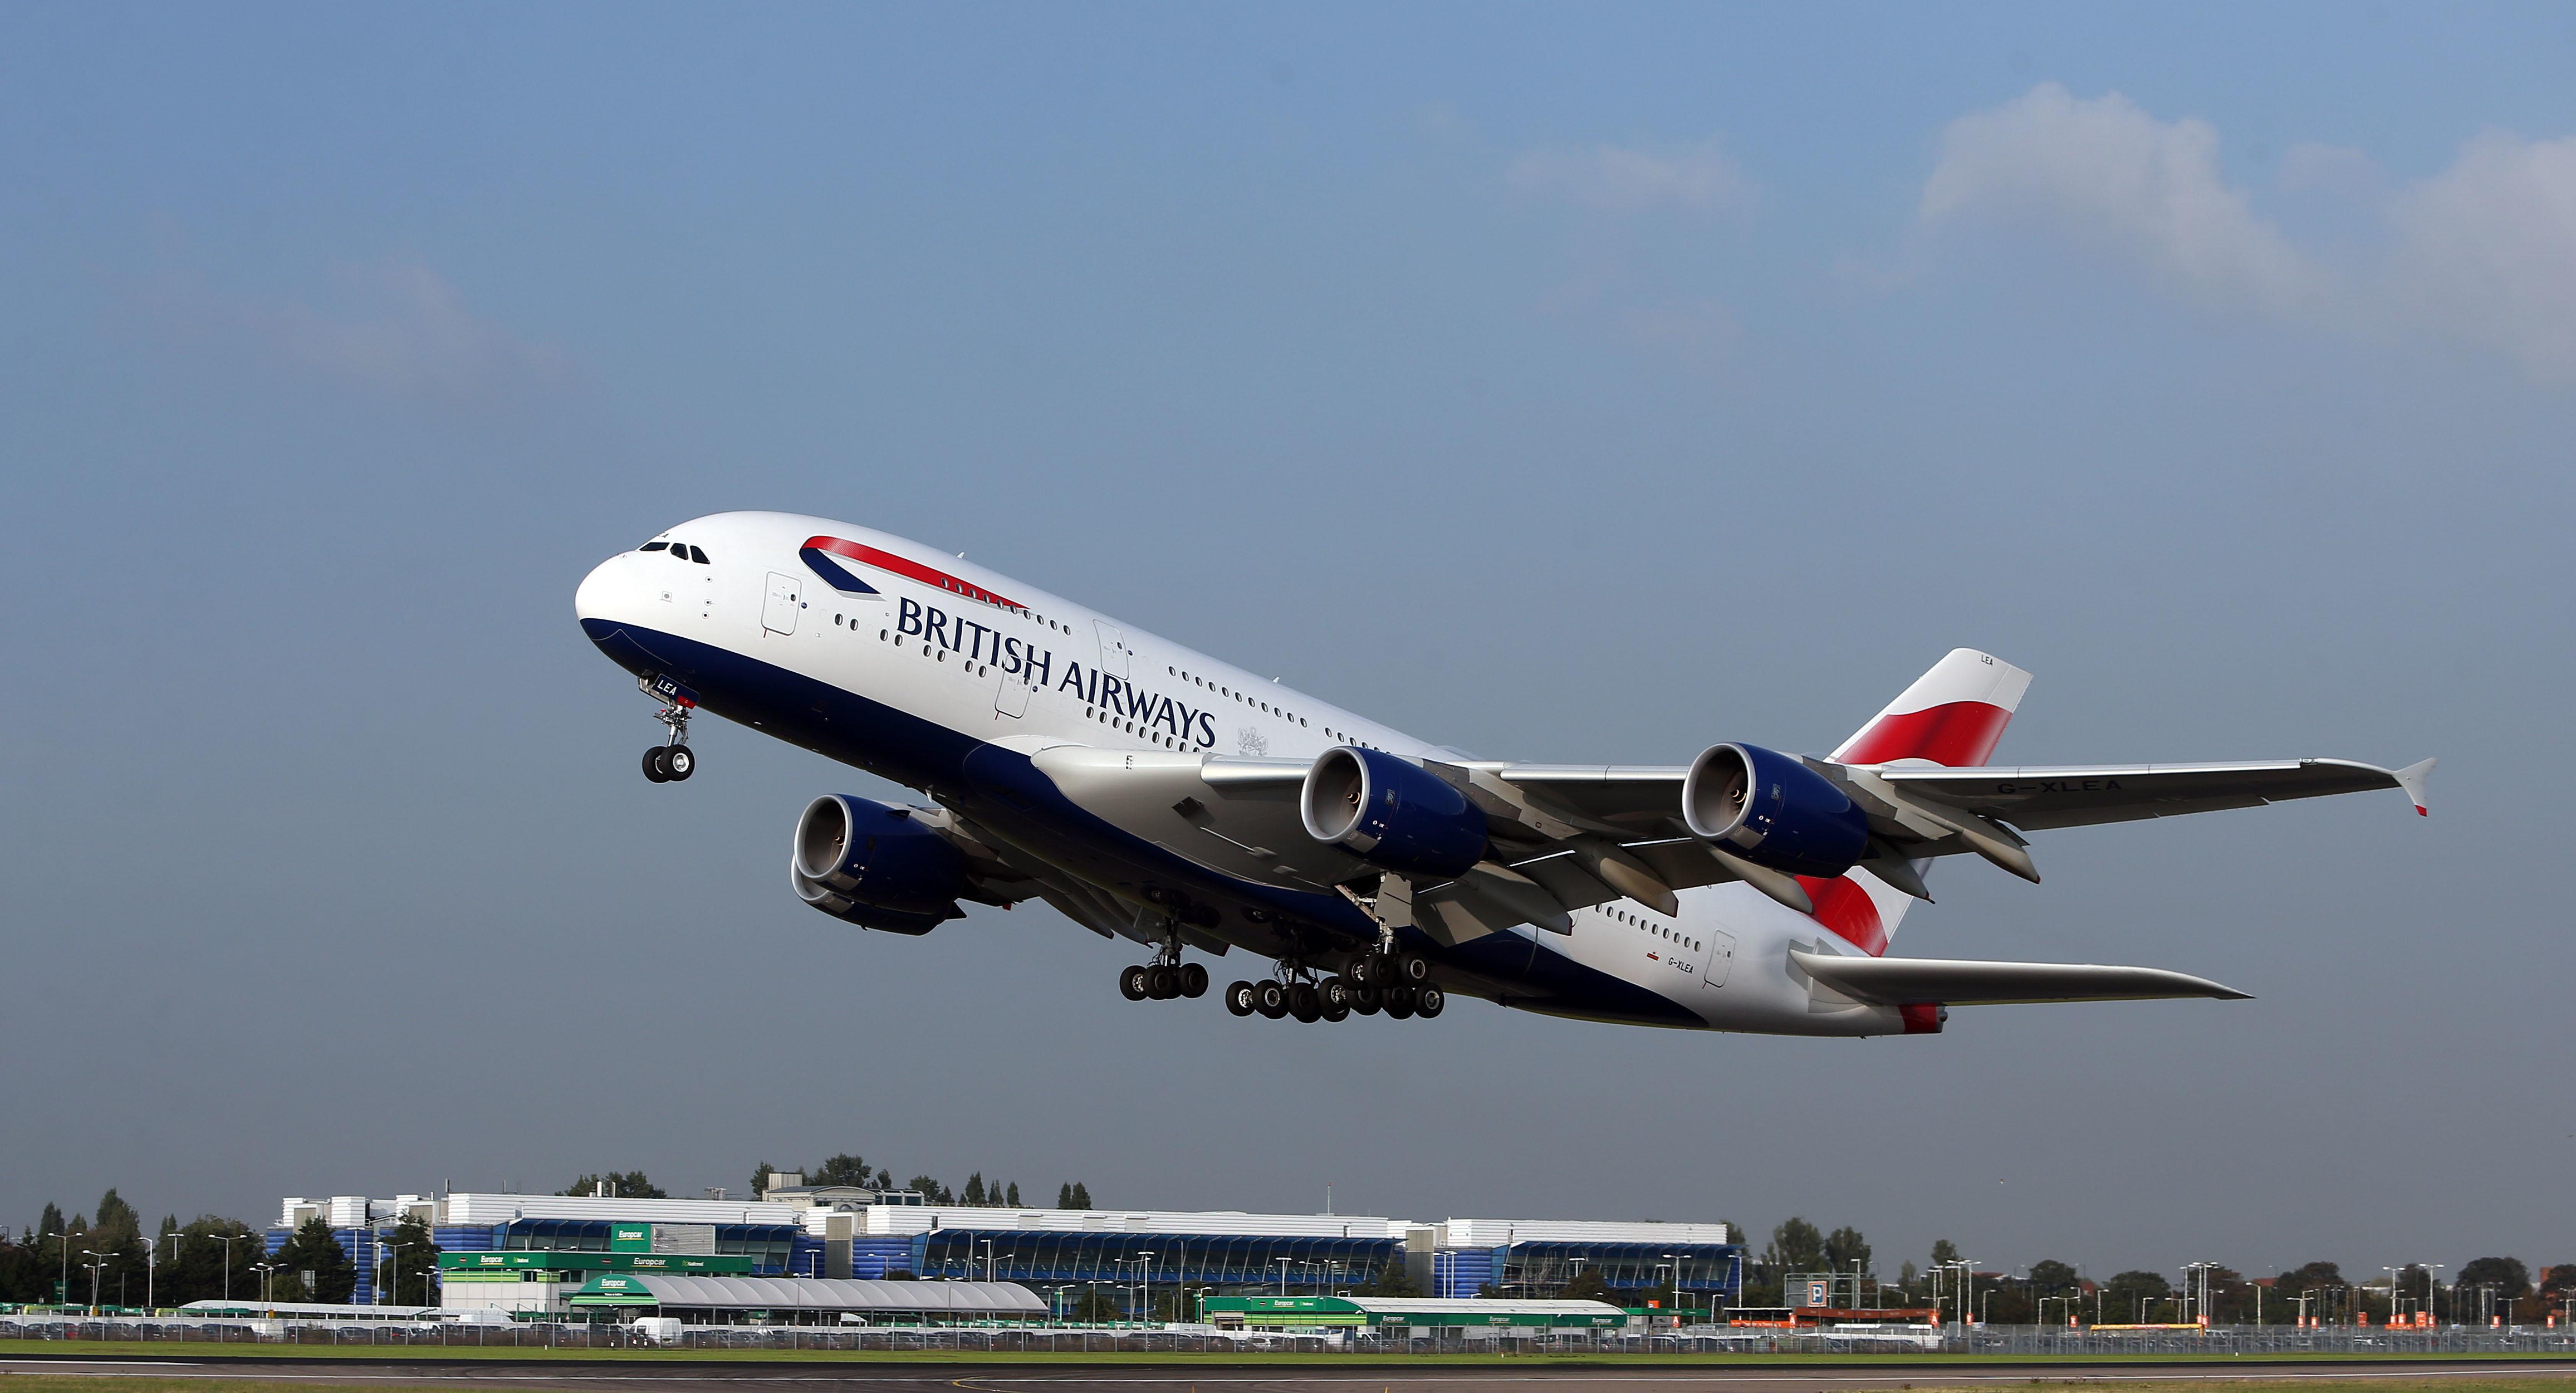 File photo dated 24/9/2013 of a British Airways' A380 taking off from London's Heathrow airport. The airline has said that it has suspended all flights to and from mainland China with immediate effect after the Foreign Office warned against �all but essential travel� to the country because of the coronavirus.